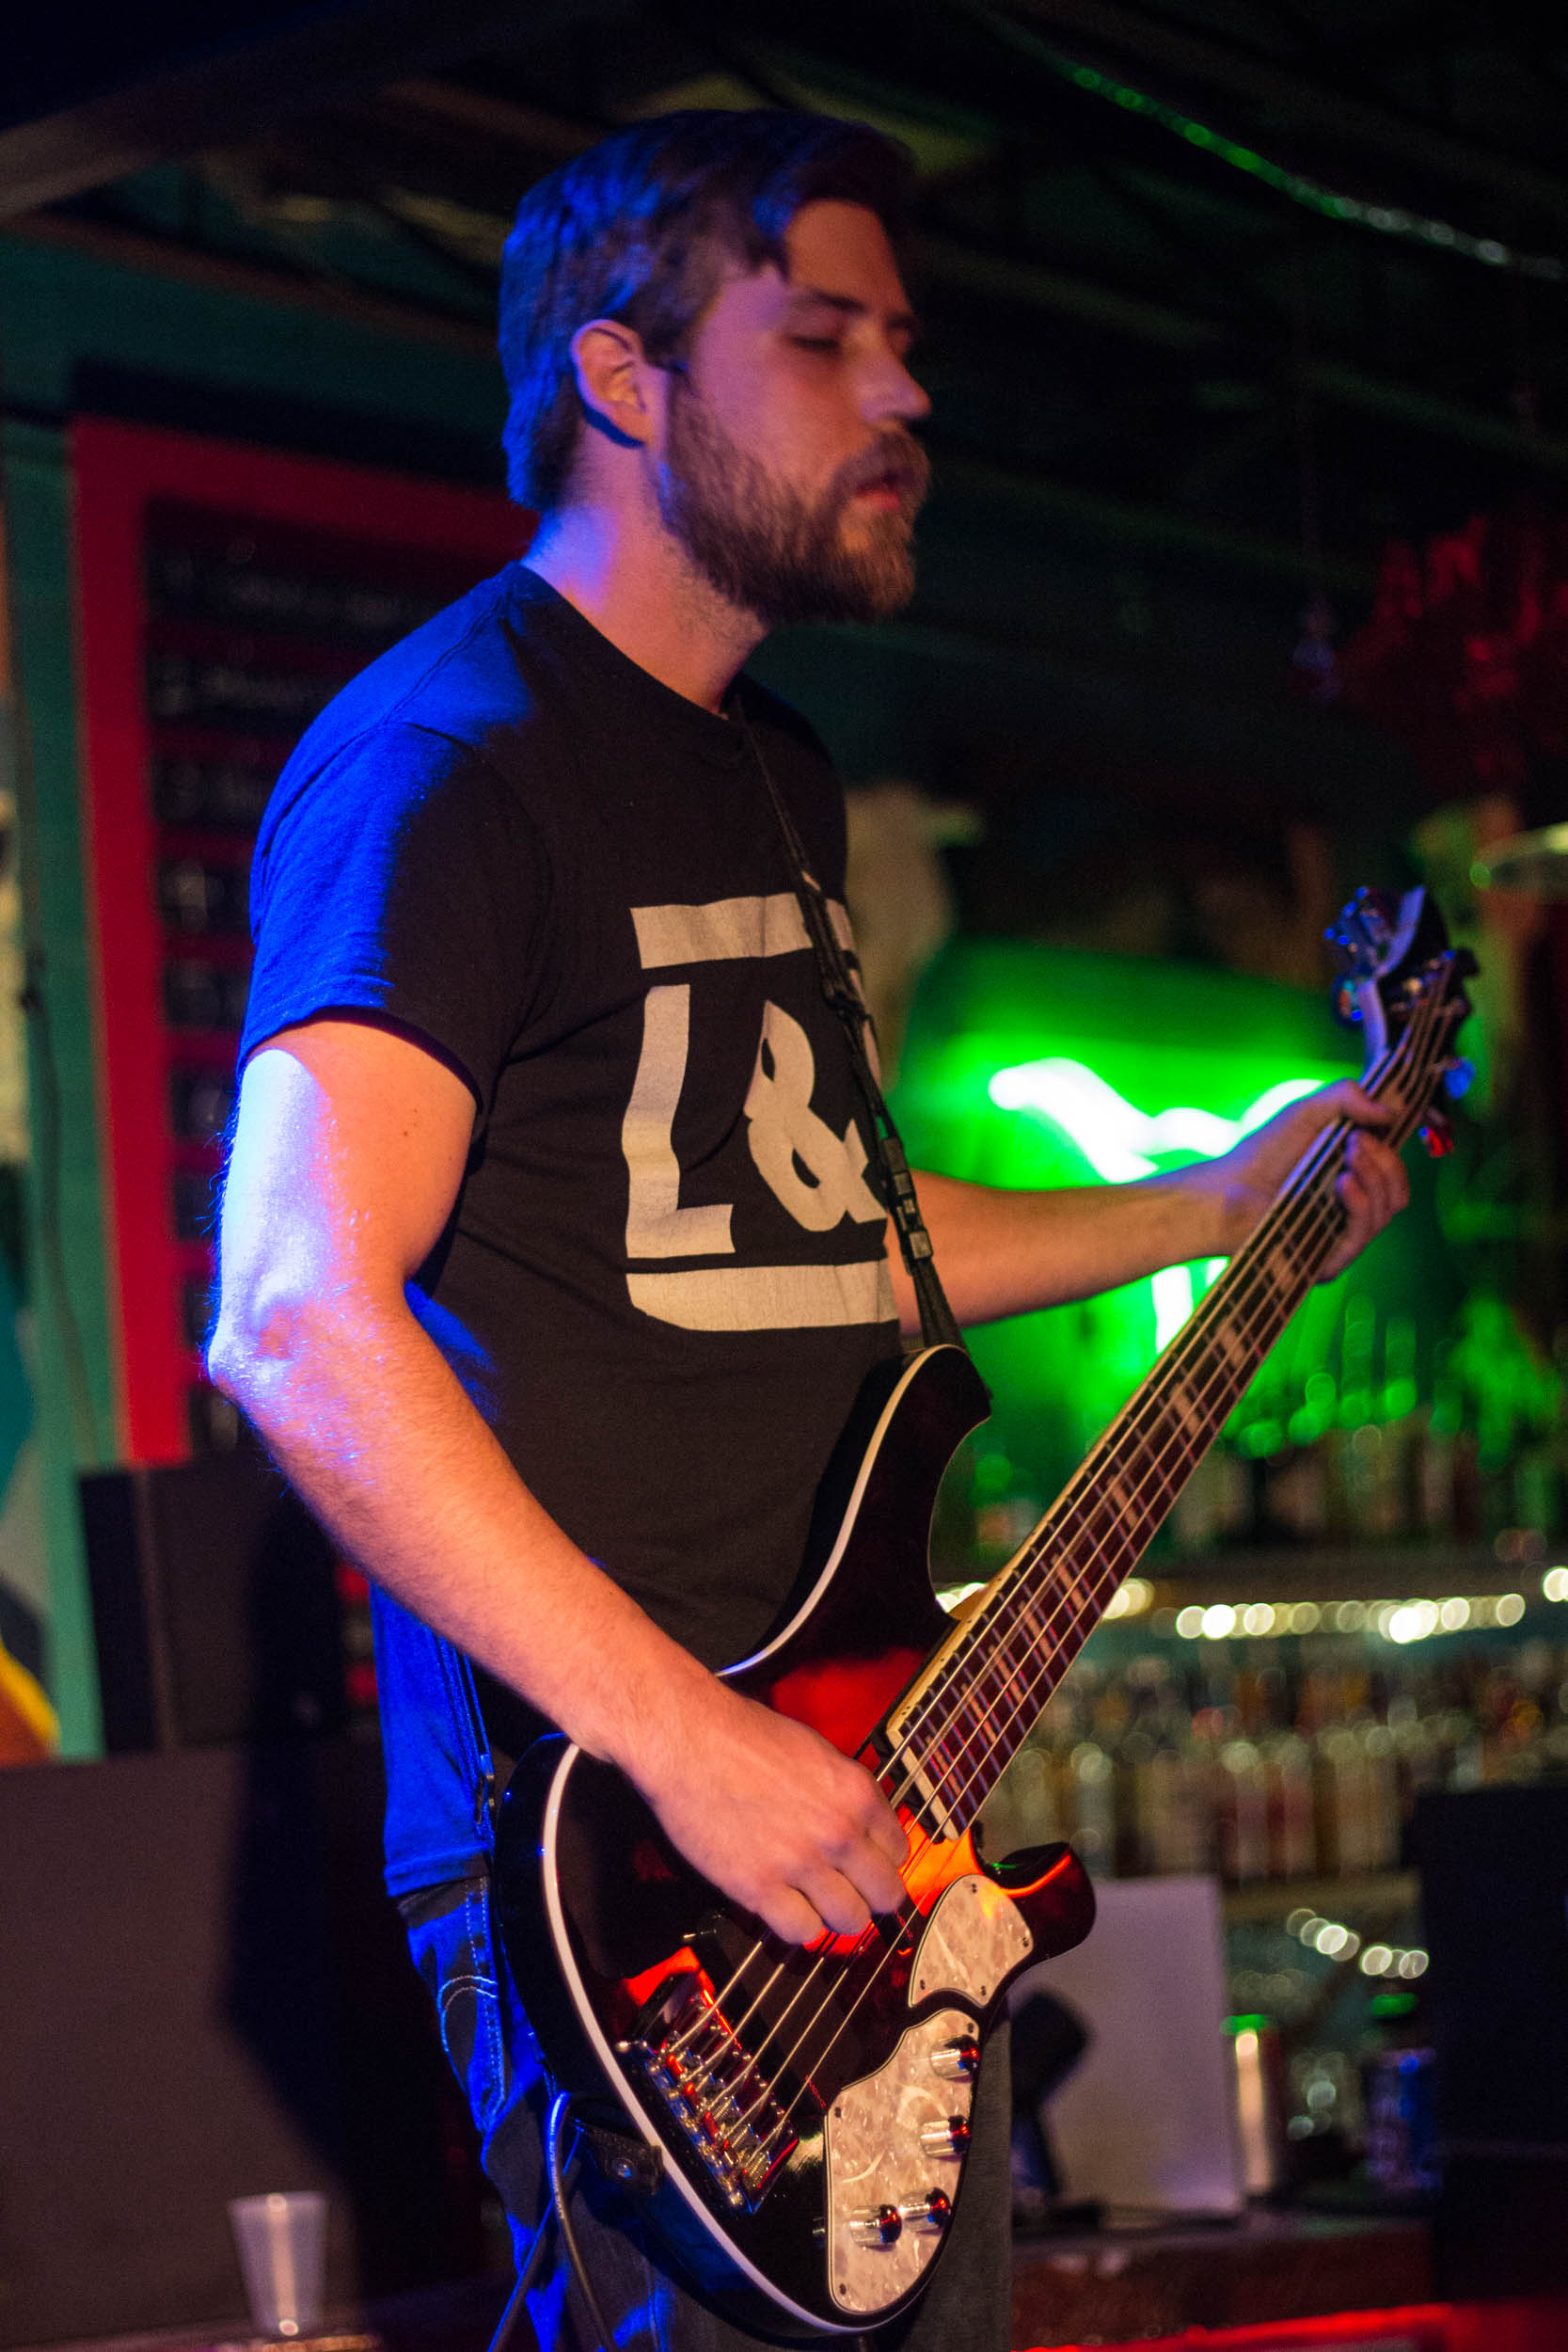 051317_Least of These at Dan's-1.jpg